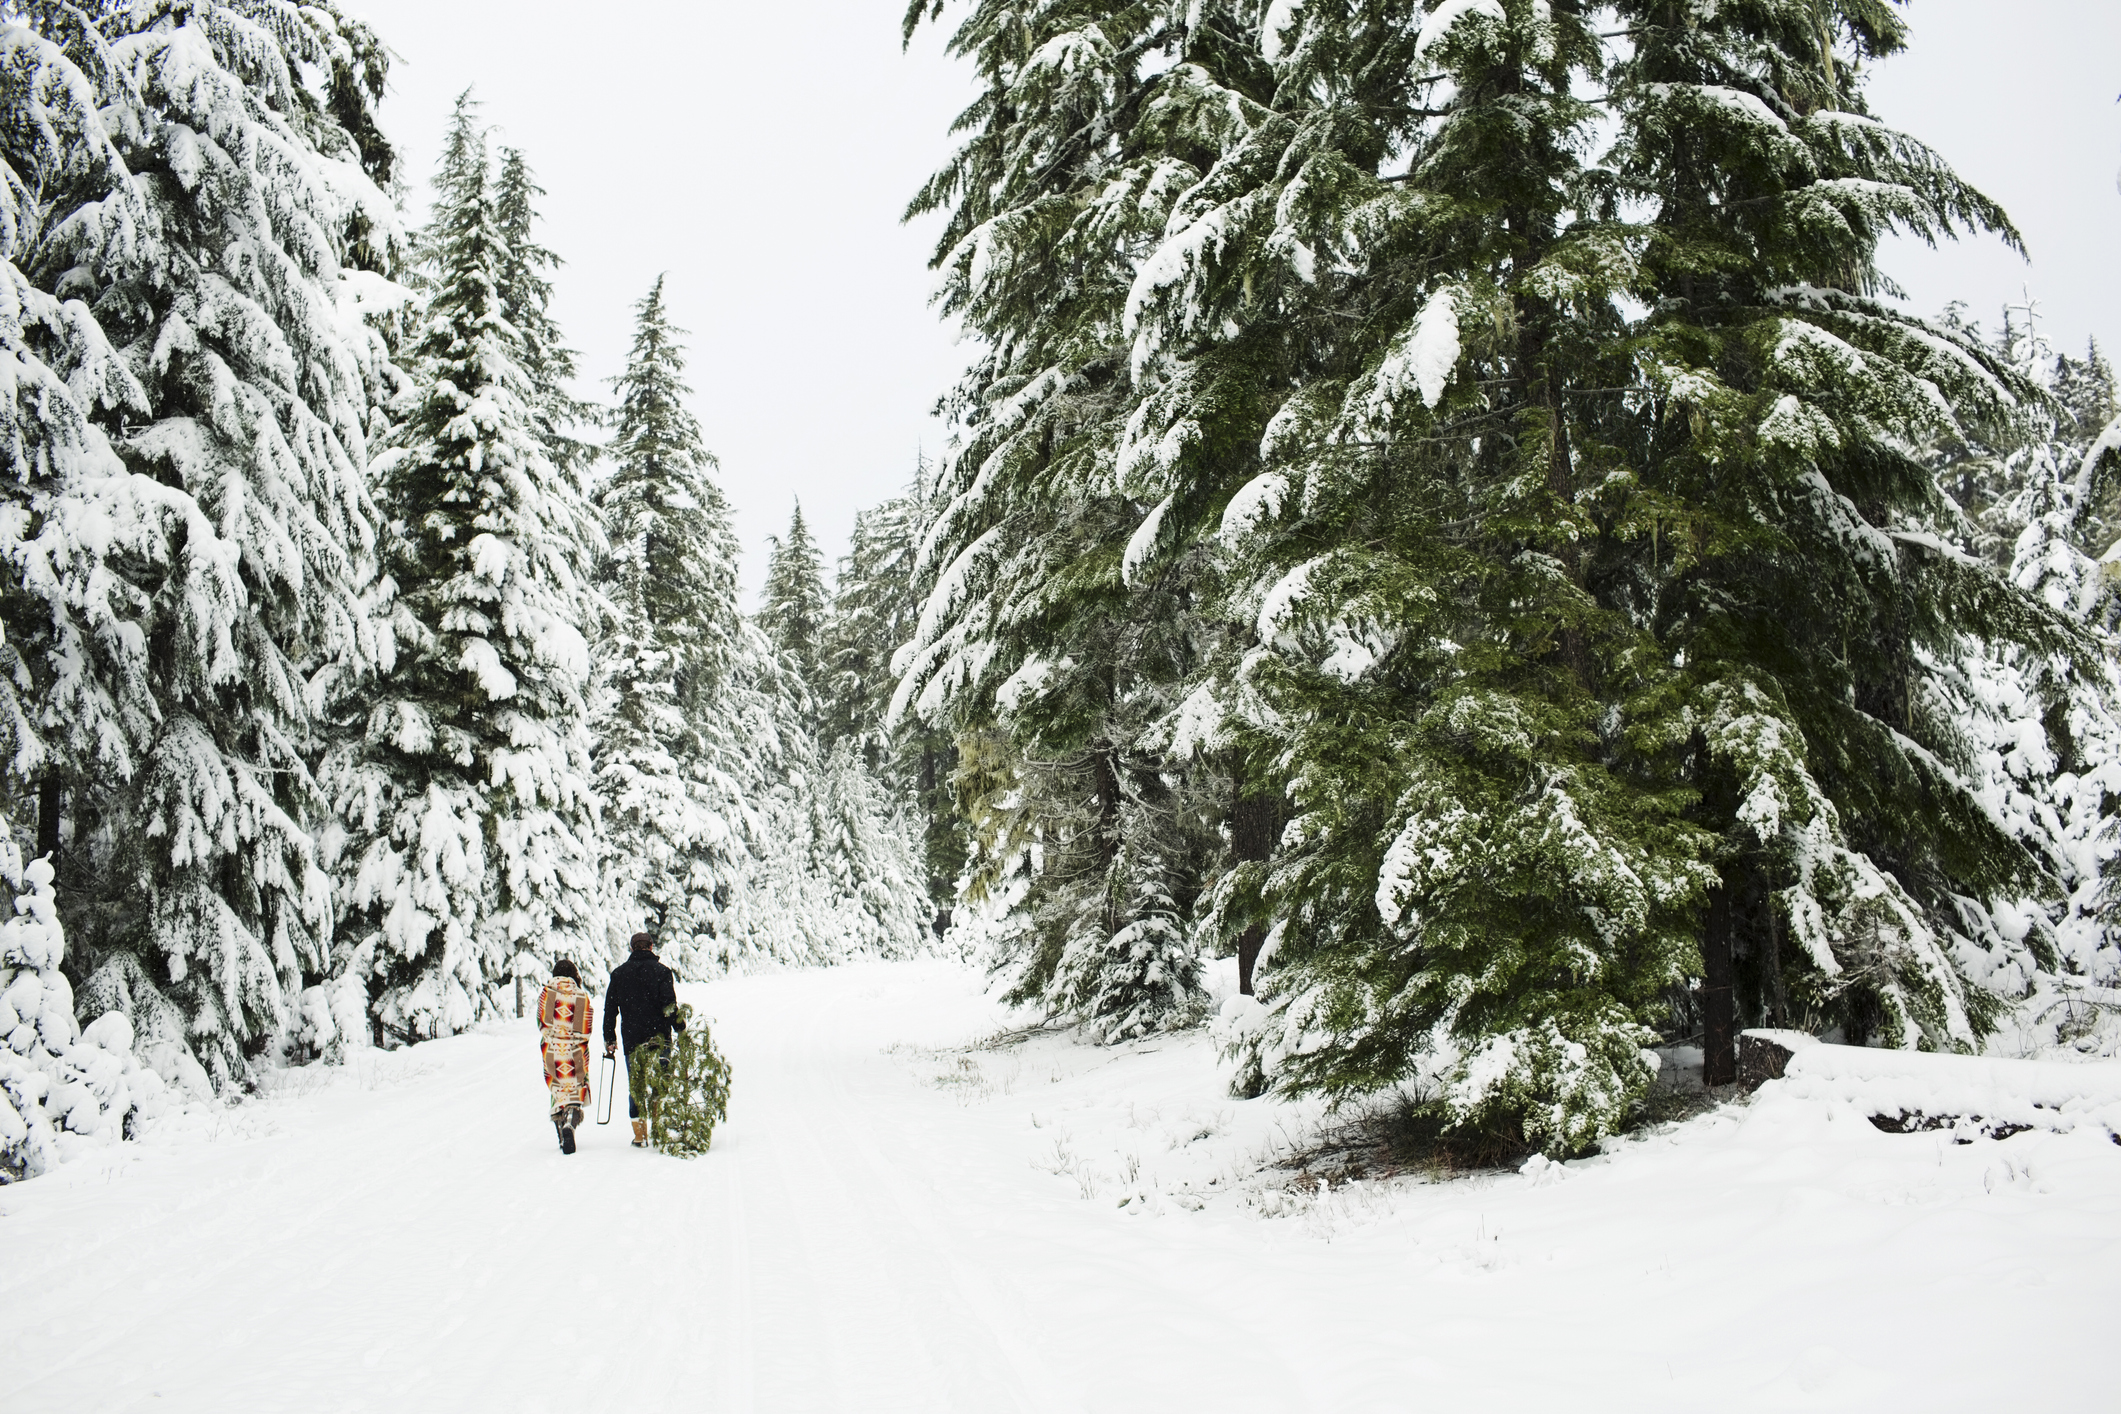 Couple walking with pine tree in national forest while cutting down Christmas tree